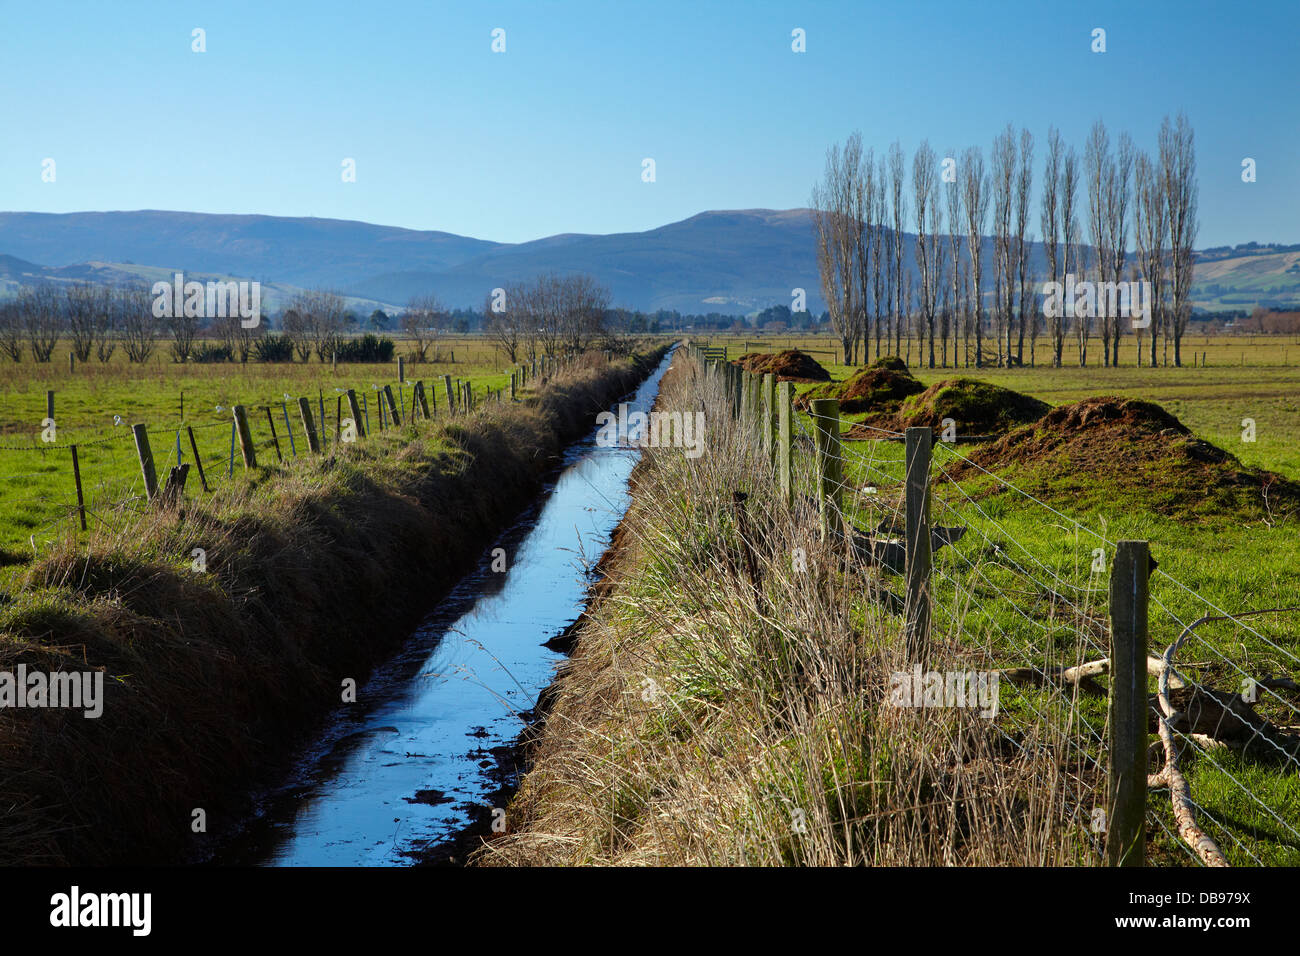 Drainage channel and fenced riparian strip, Taieri Plains, near Dunedin, South Island, New Zealand - Stock Image